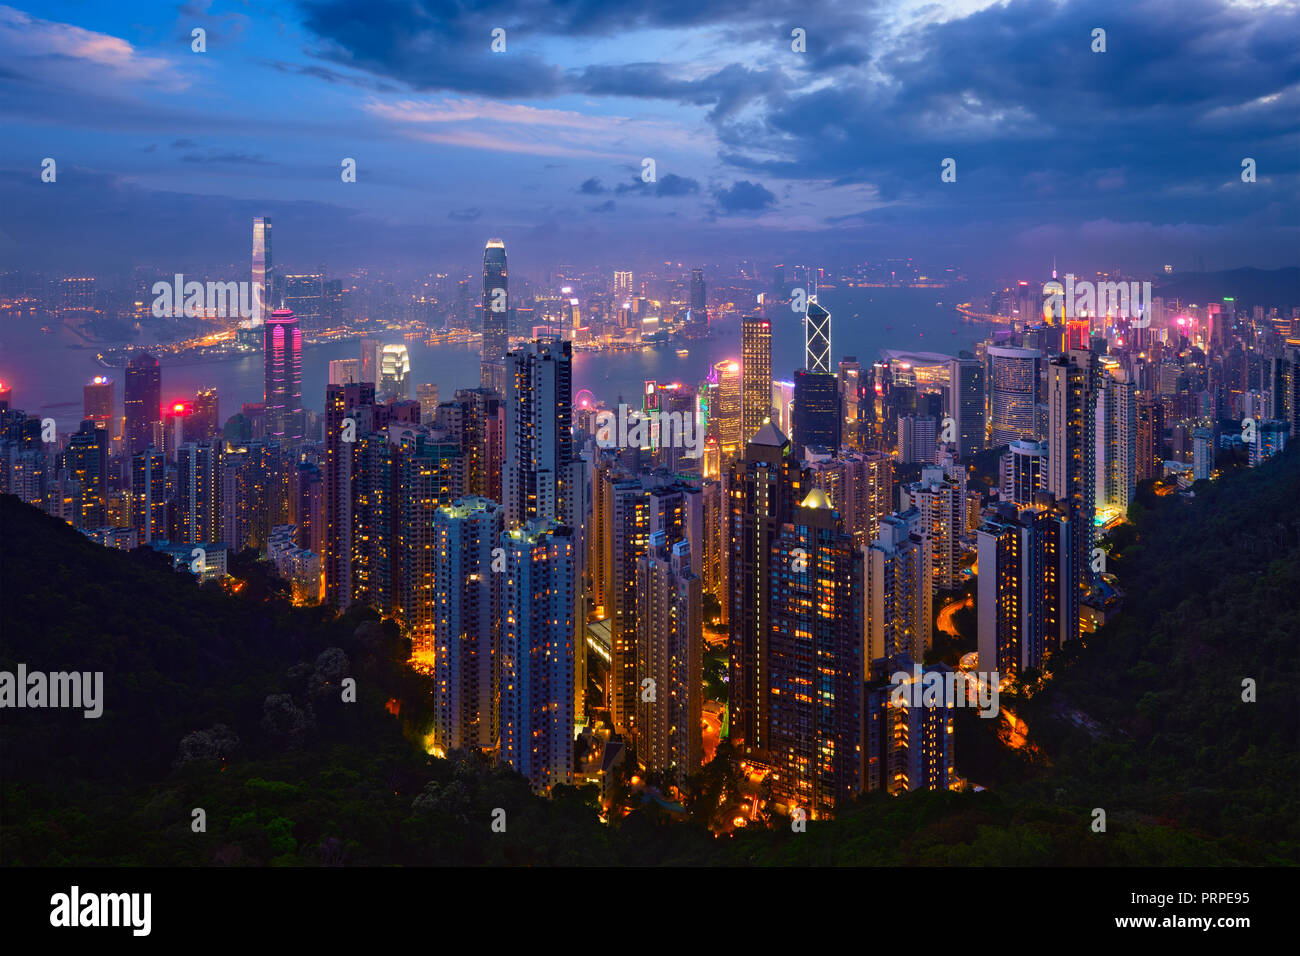 Toits de gratte-ciel de Hong Kong cityscape view Photo Stock